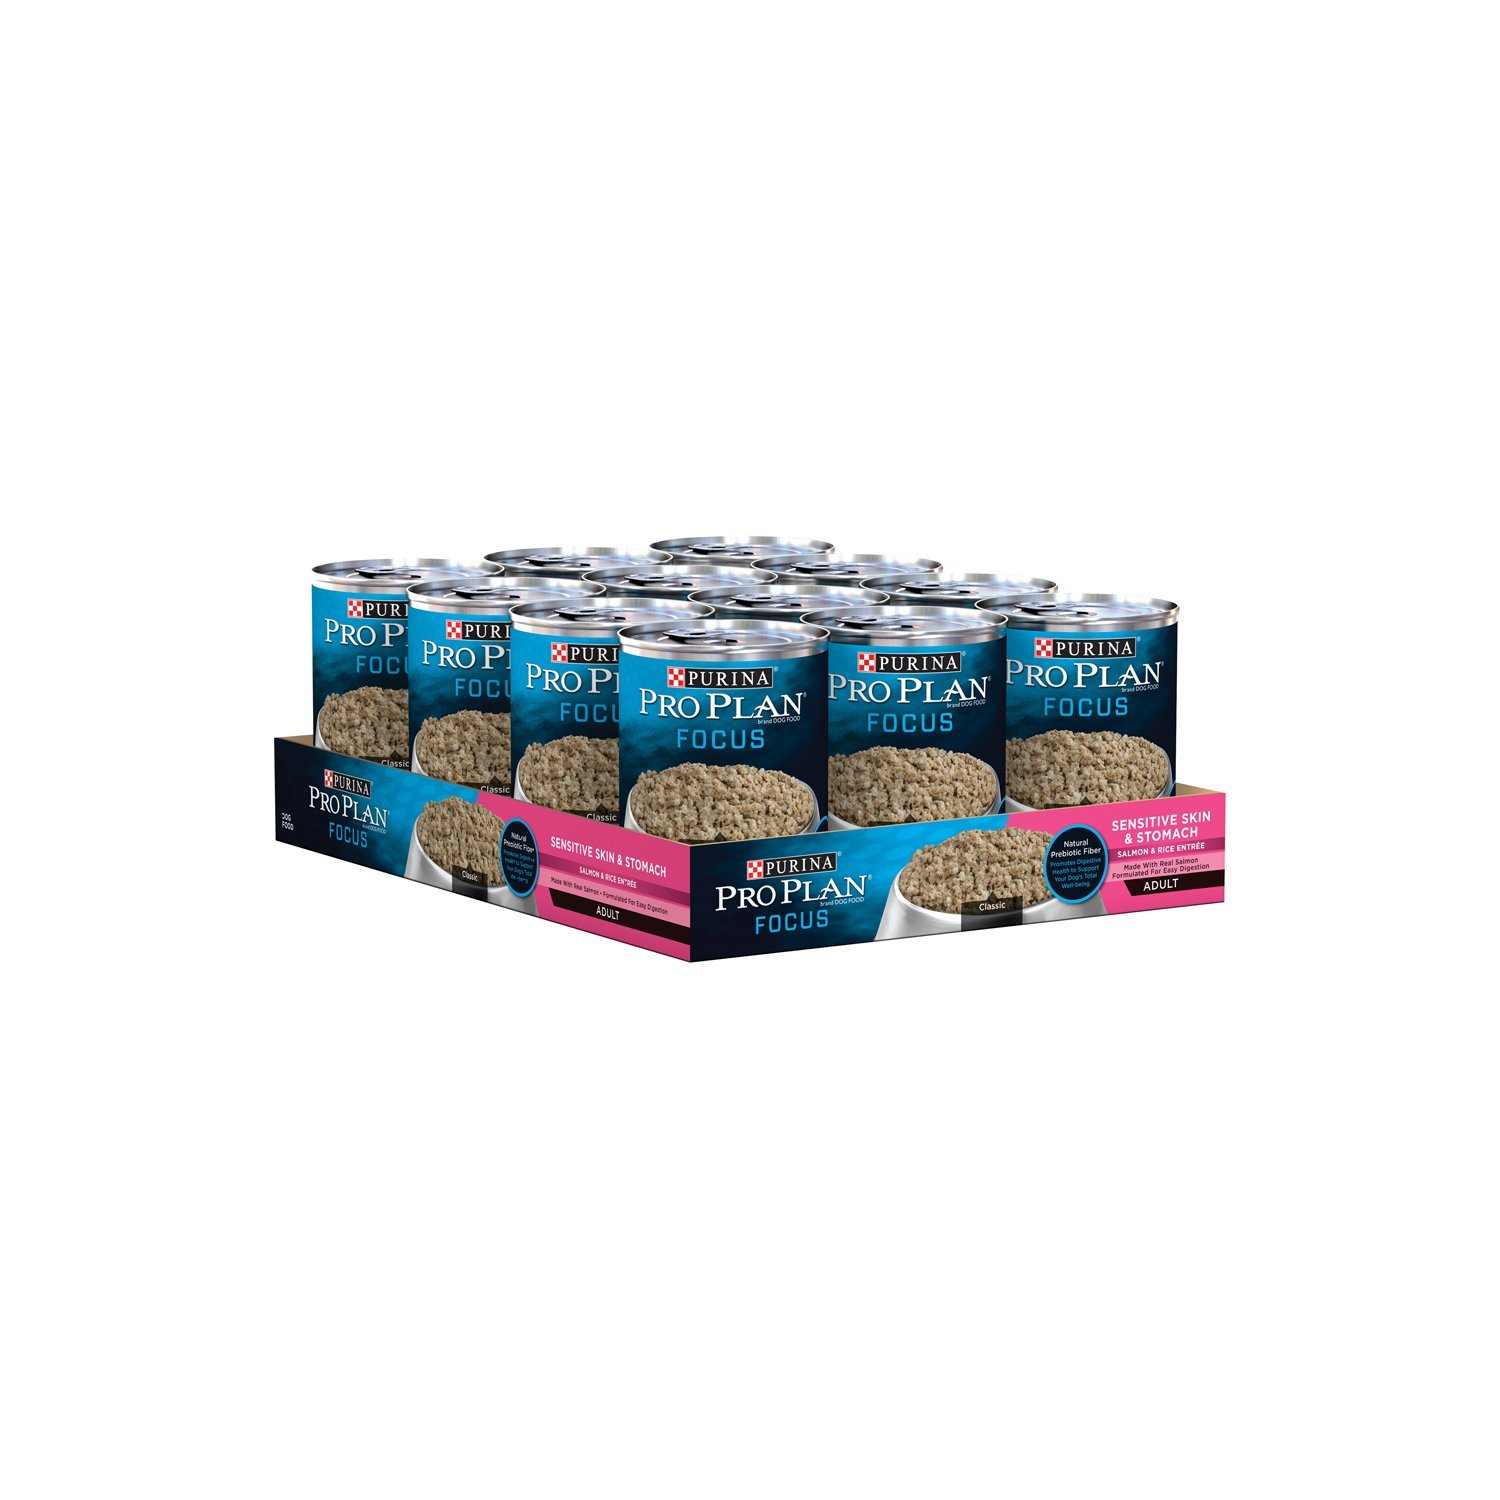 Purina Pro Plan (3810002766) Focus Sensitive Skin & Stomach Salmon & Rice Entre Classic Wet Dog Food - 12-13 oz. Cans by Purina Pro Plan (Image #3)